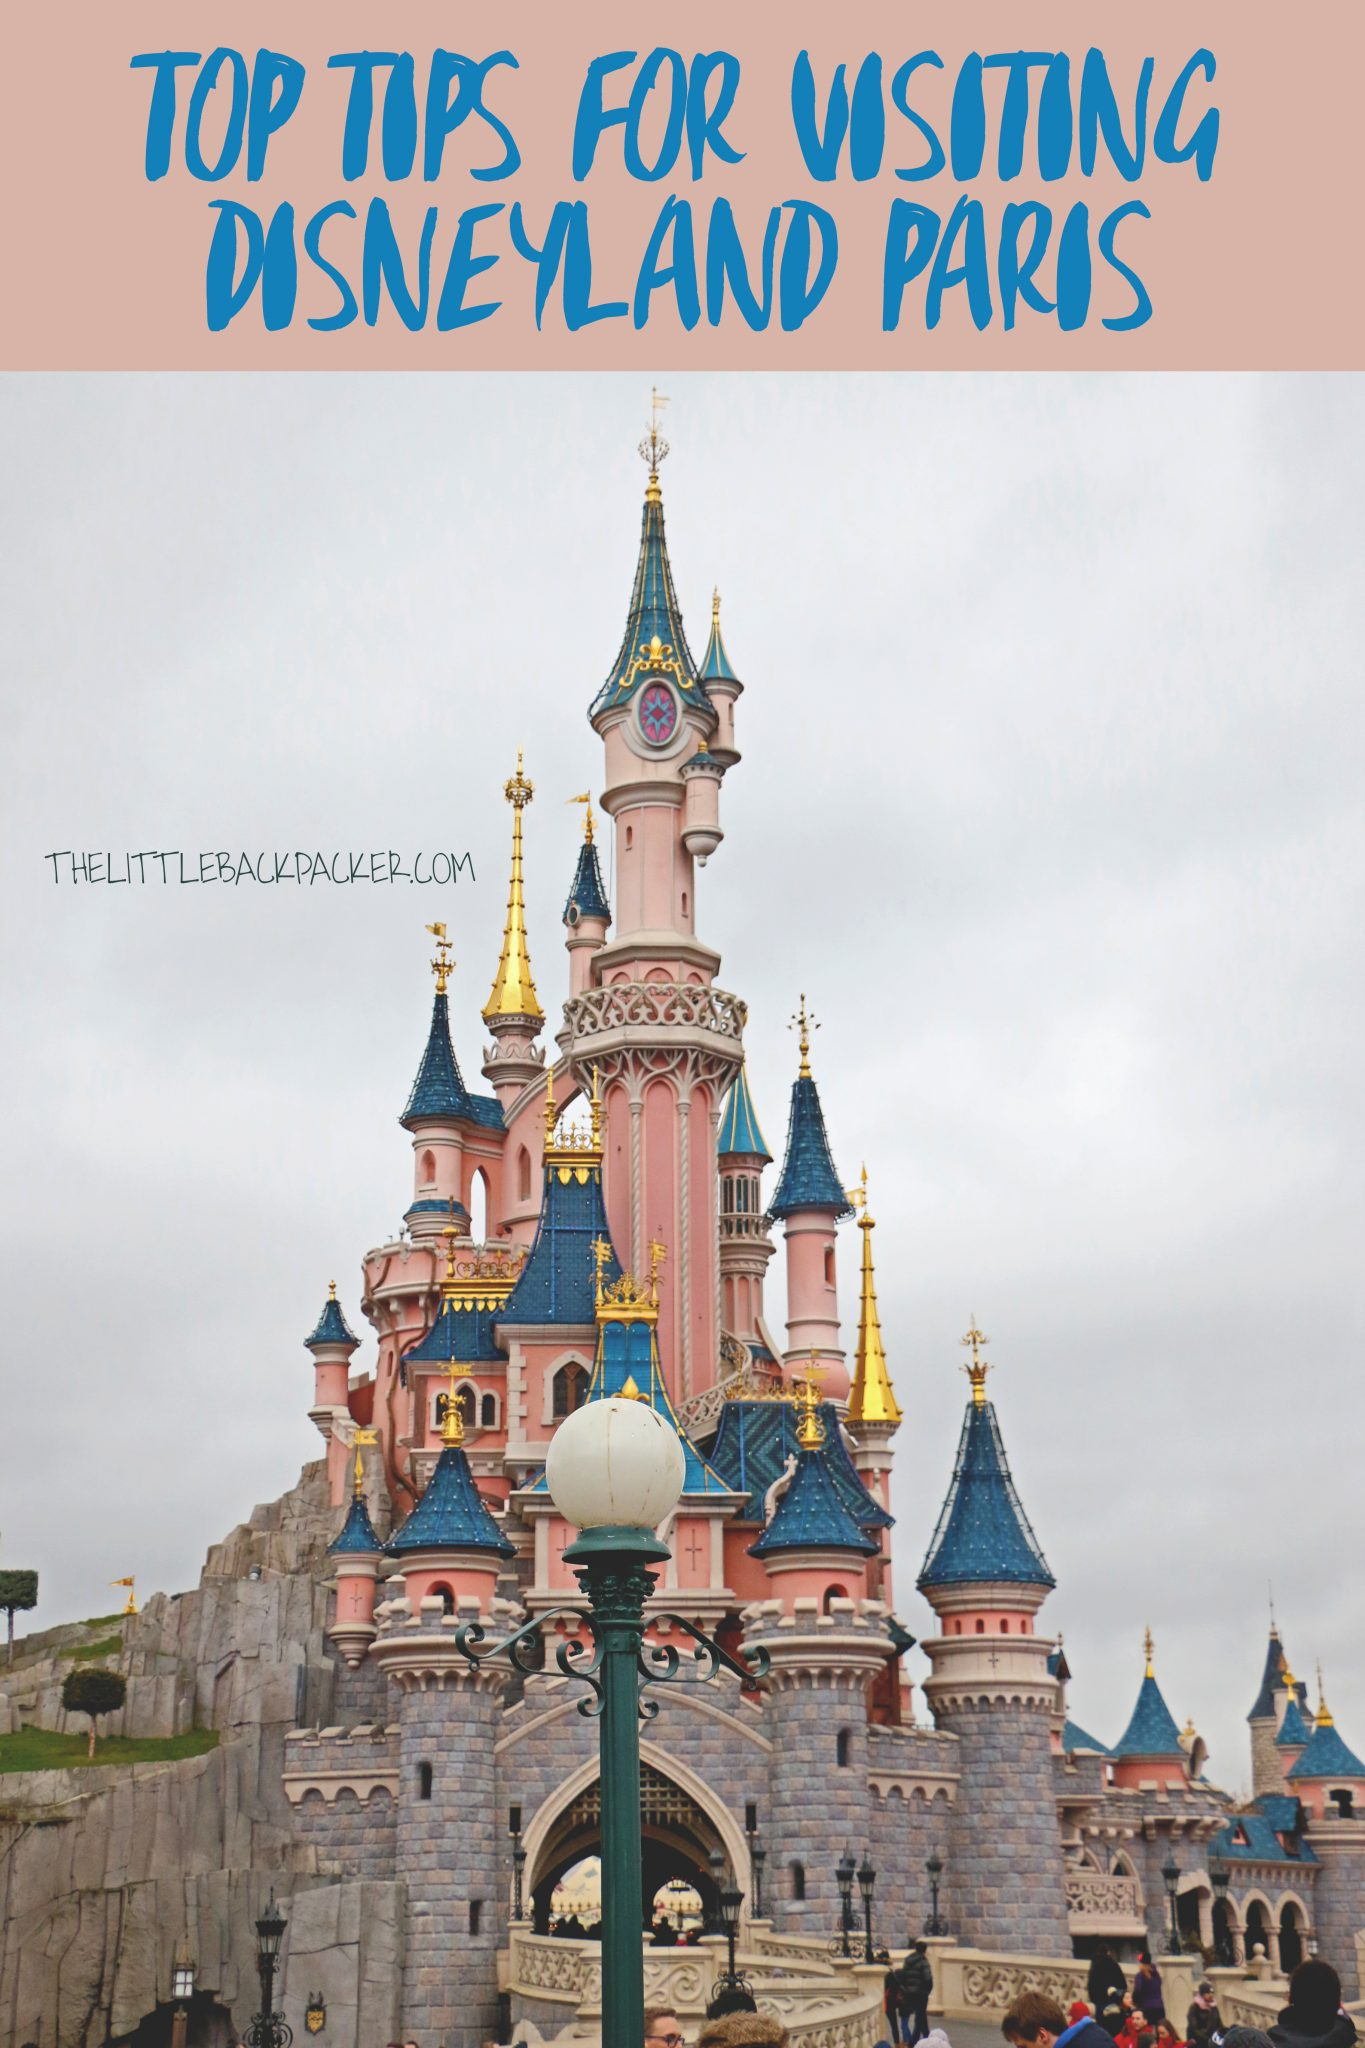 Why book your Disneyland Paris Tickets with us?